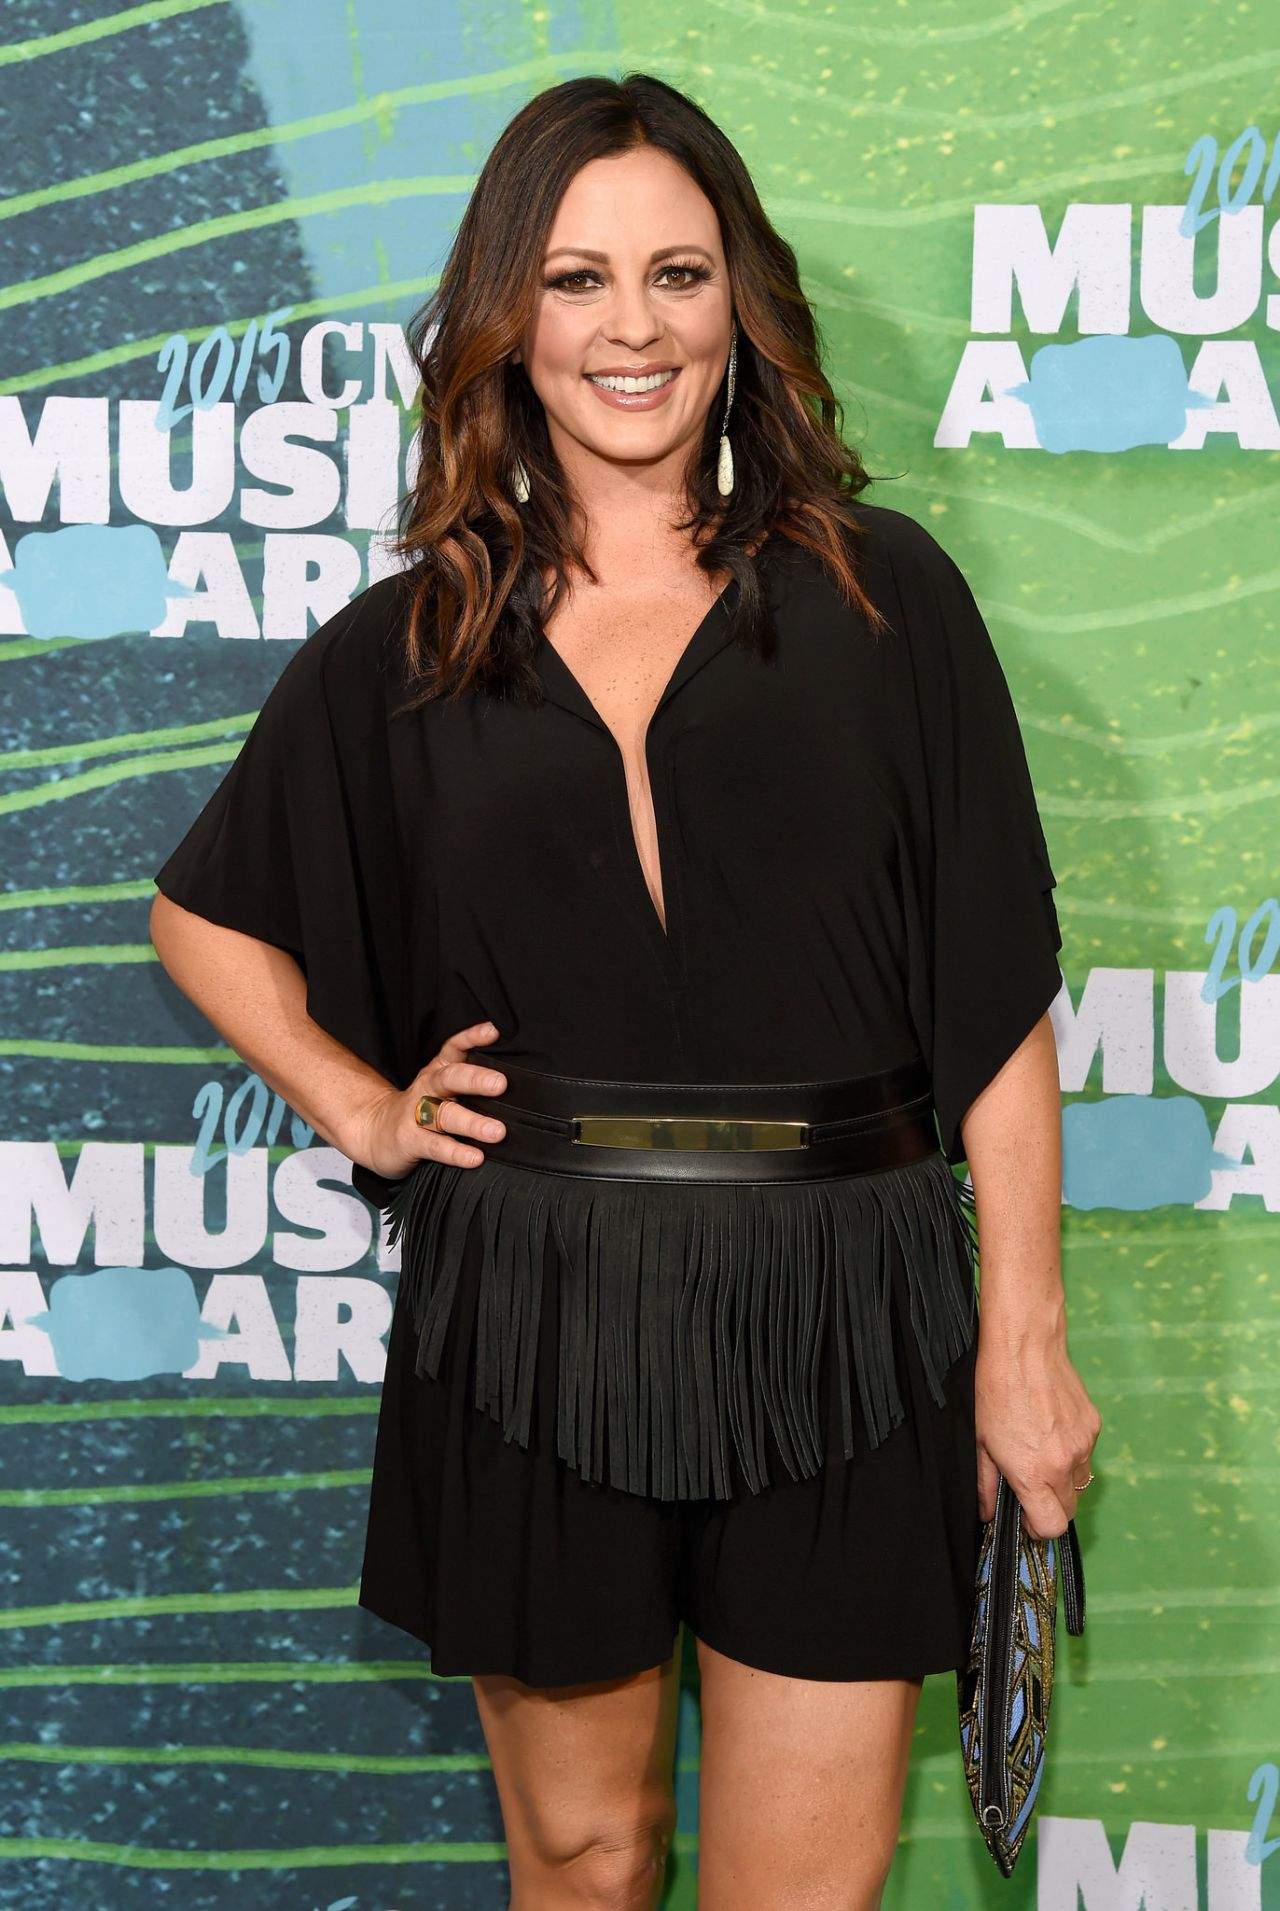 Sara Evans 2015 Cmt Music Awards At The Bridgestone